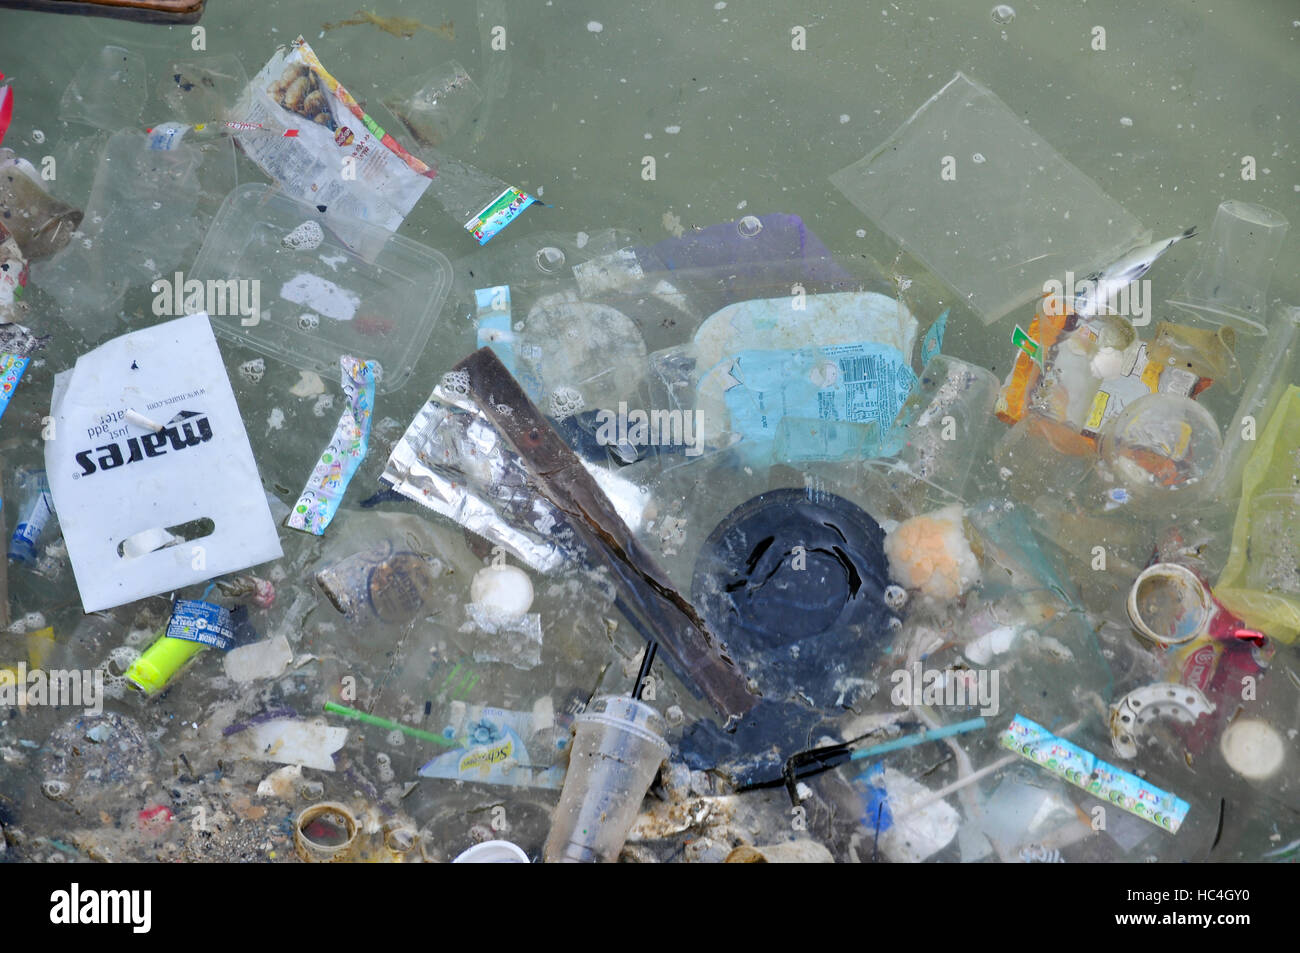 Polluted dirty water - oil, household debris, drift wood and plastic flout in a polluted body of water. Photographed - Stock Image